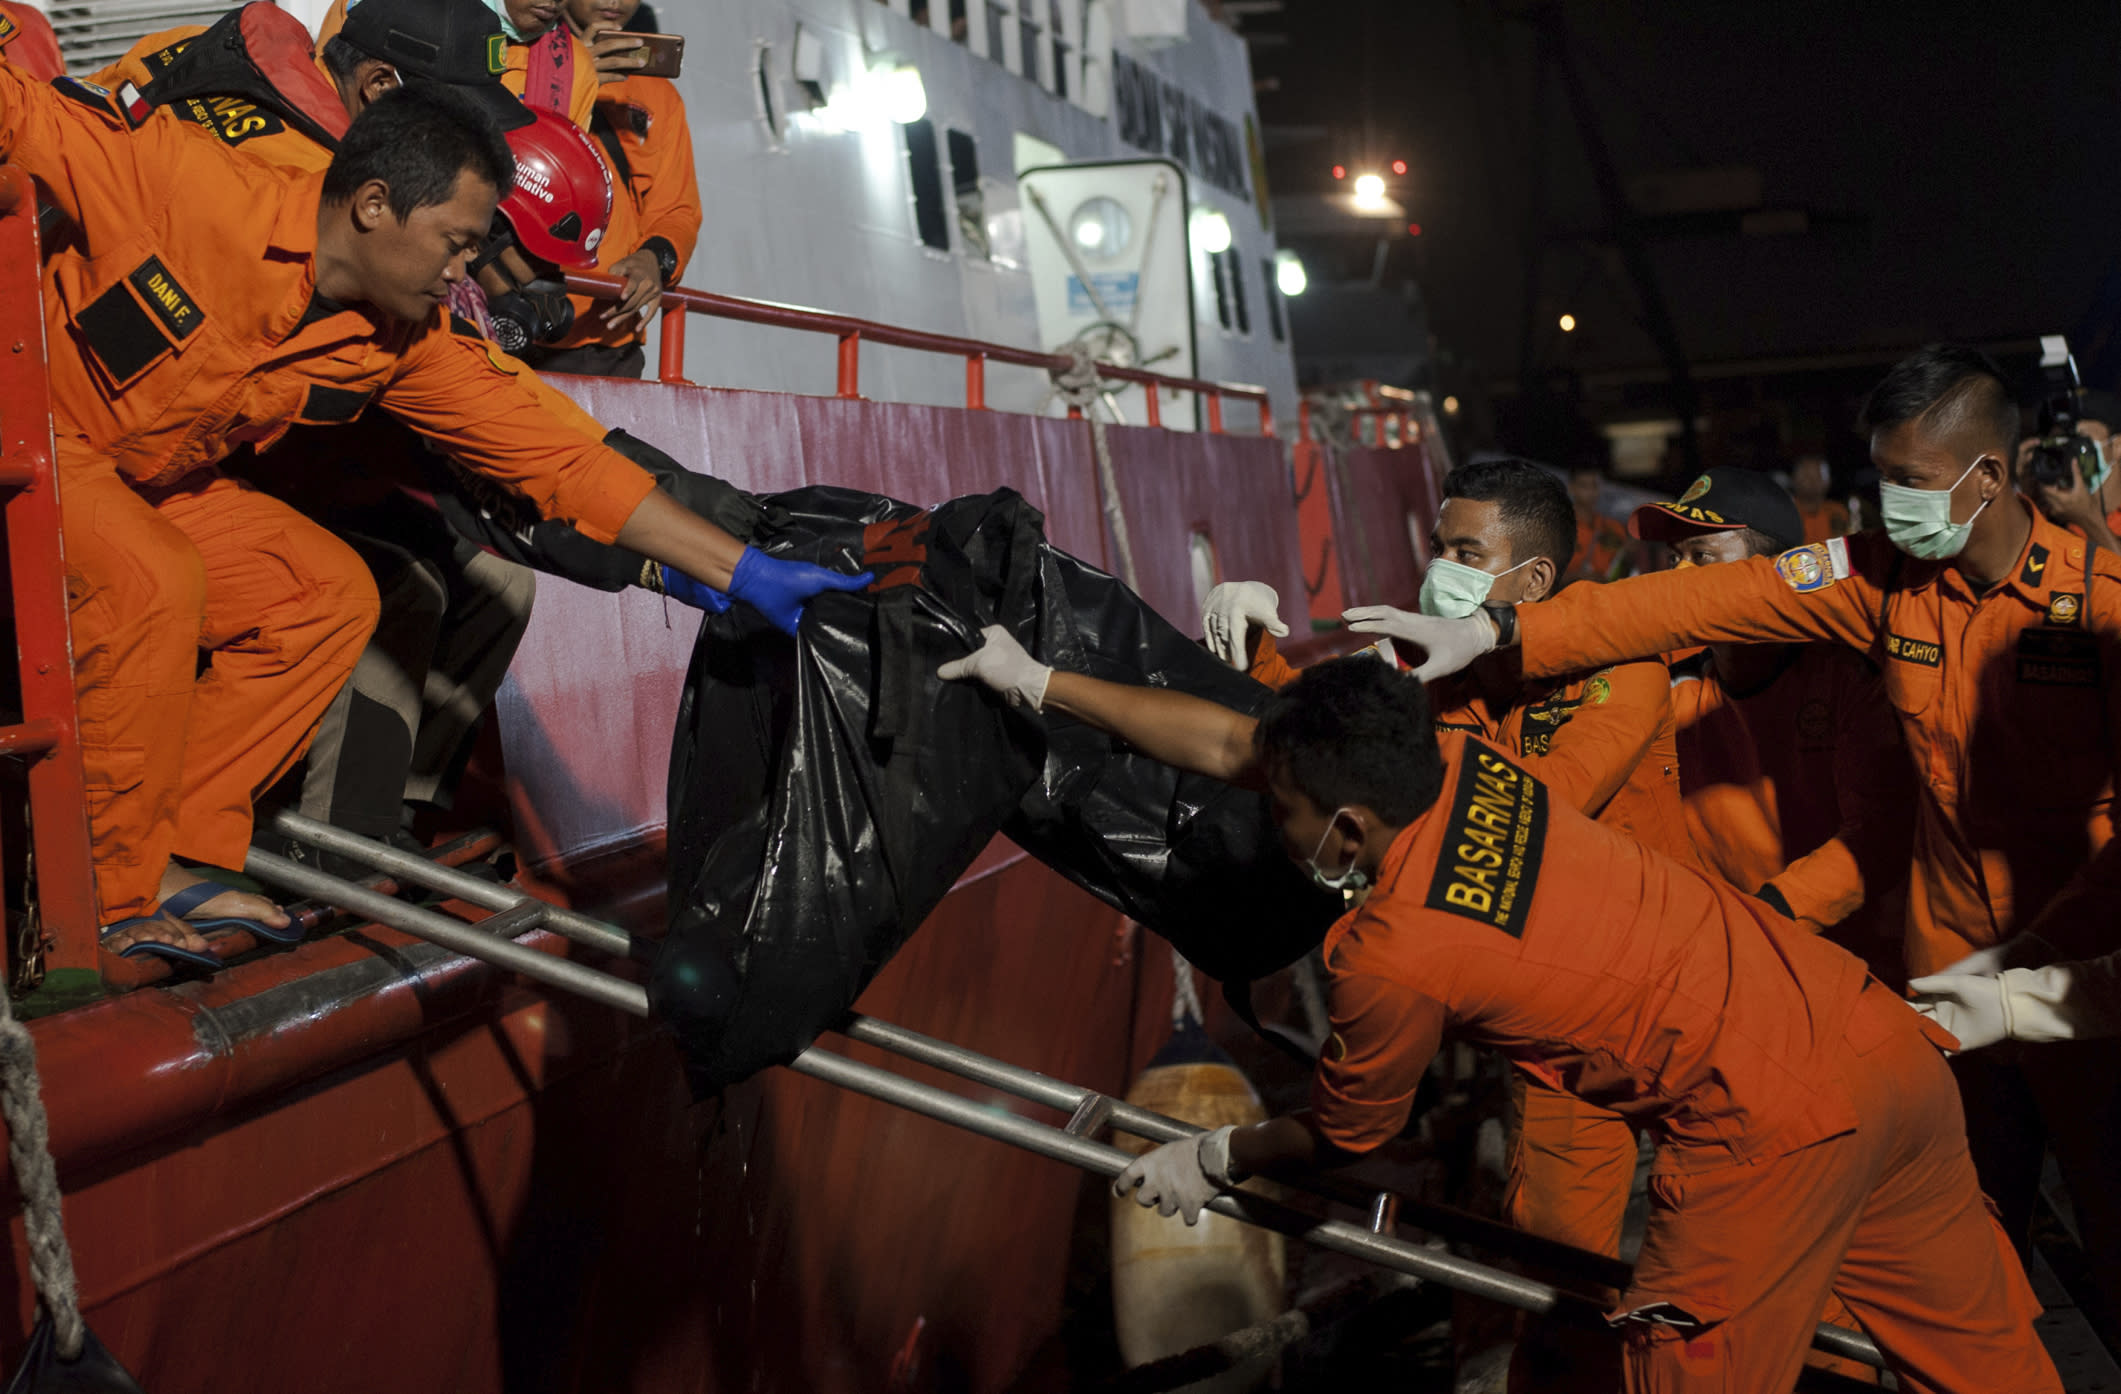 Rescuers hand body bags containing the remains of the victims of the crashed Lion Air jet to colleagues upon arrival at Tanjung Priok Port in Jakarta, Indonesia, Saturday, Nov. 3, 2018. The brand new Boeing 737 MAX 8 jet plunged into the Java Sea just minutes after takeoff from Jakarta early on Oct. 29, killing all of its passengers on board. (AP Photo/Fauzy Chaniago)